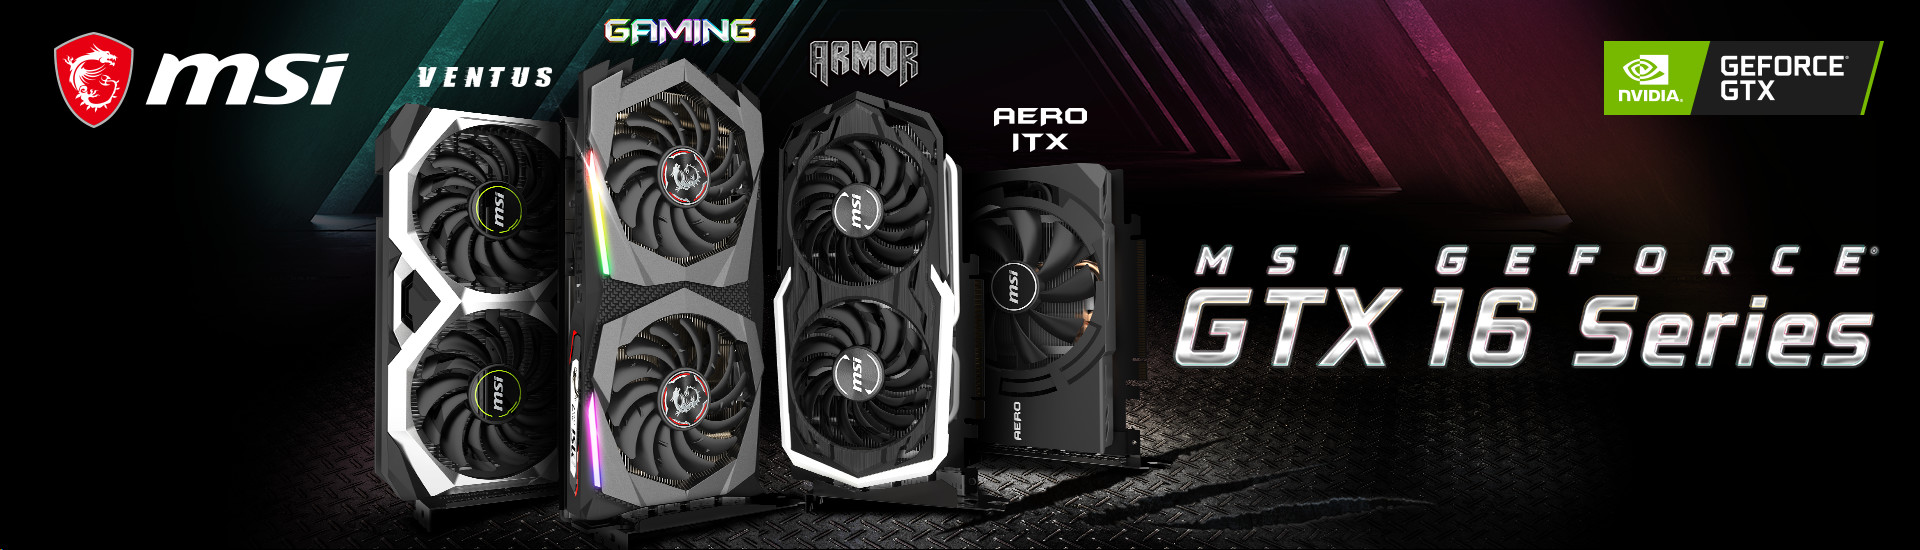 MSI Reveals New GeForce GTX 1660 Series Graphics Cards